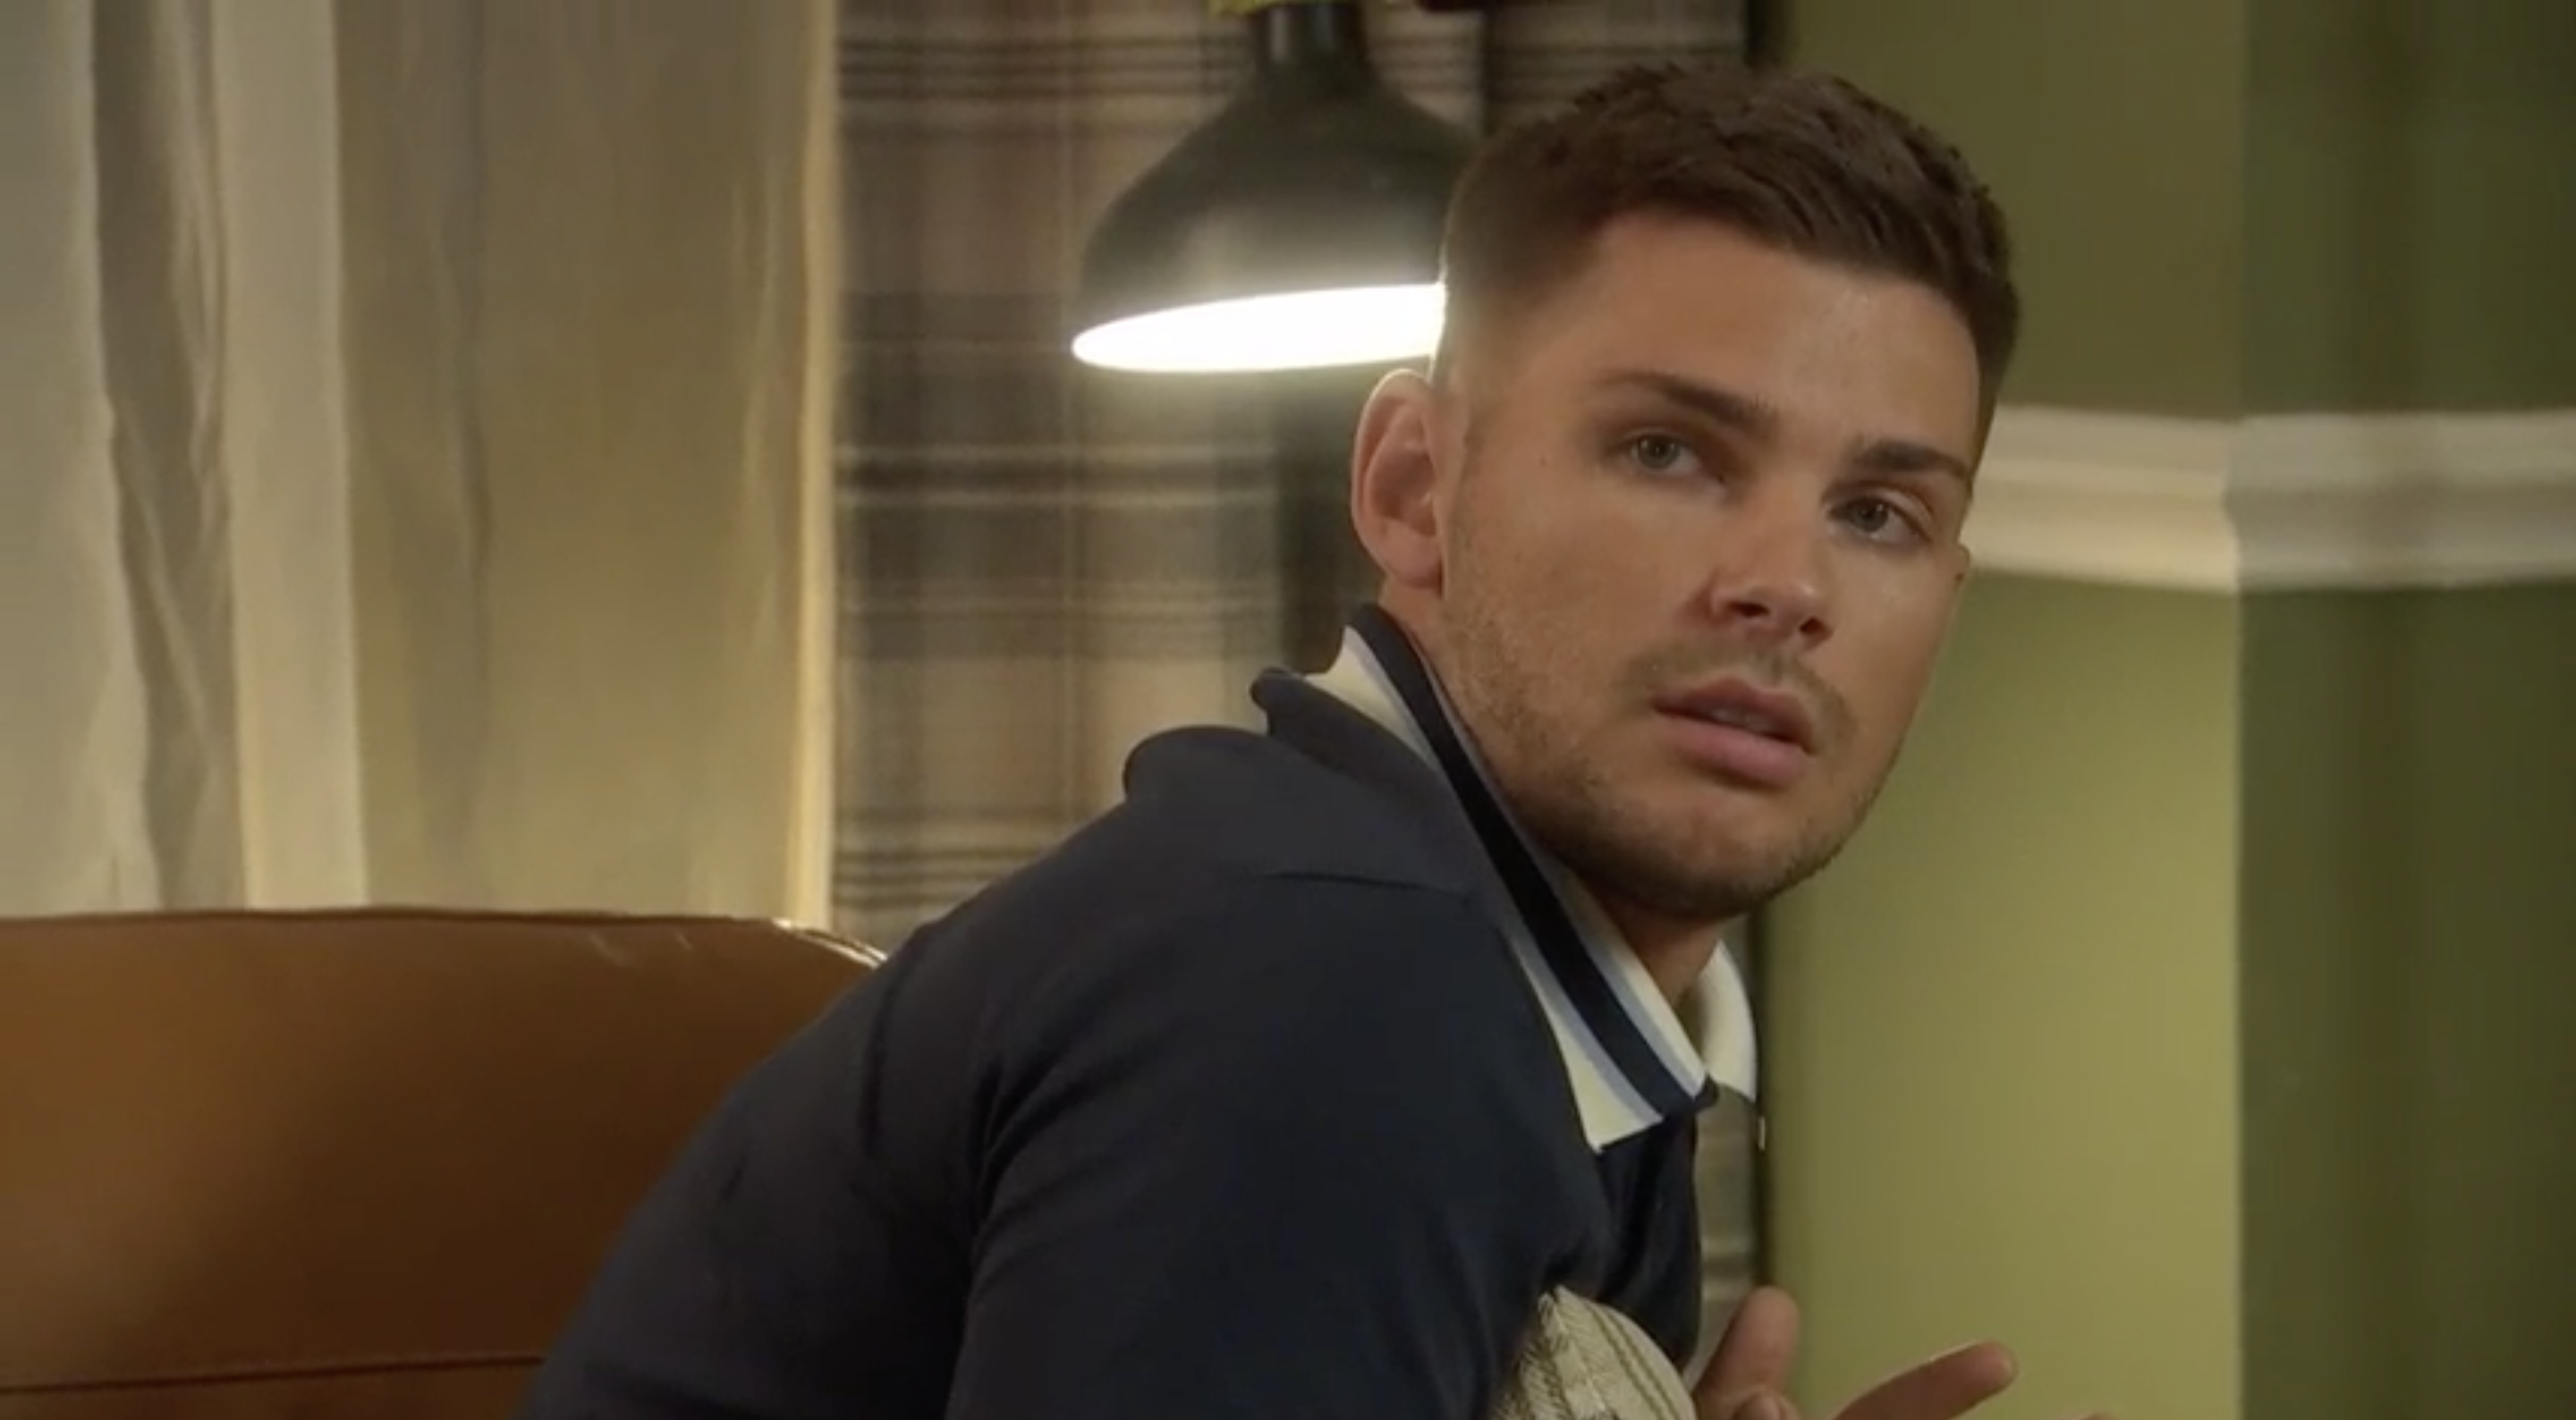 Hollyoaks: Ste Hay's botched escape attempt leads to heinous attack